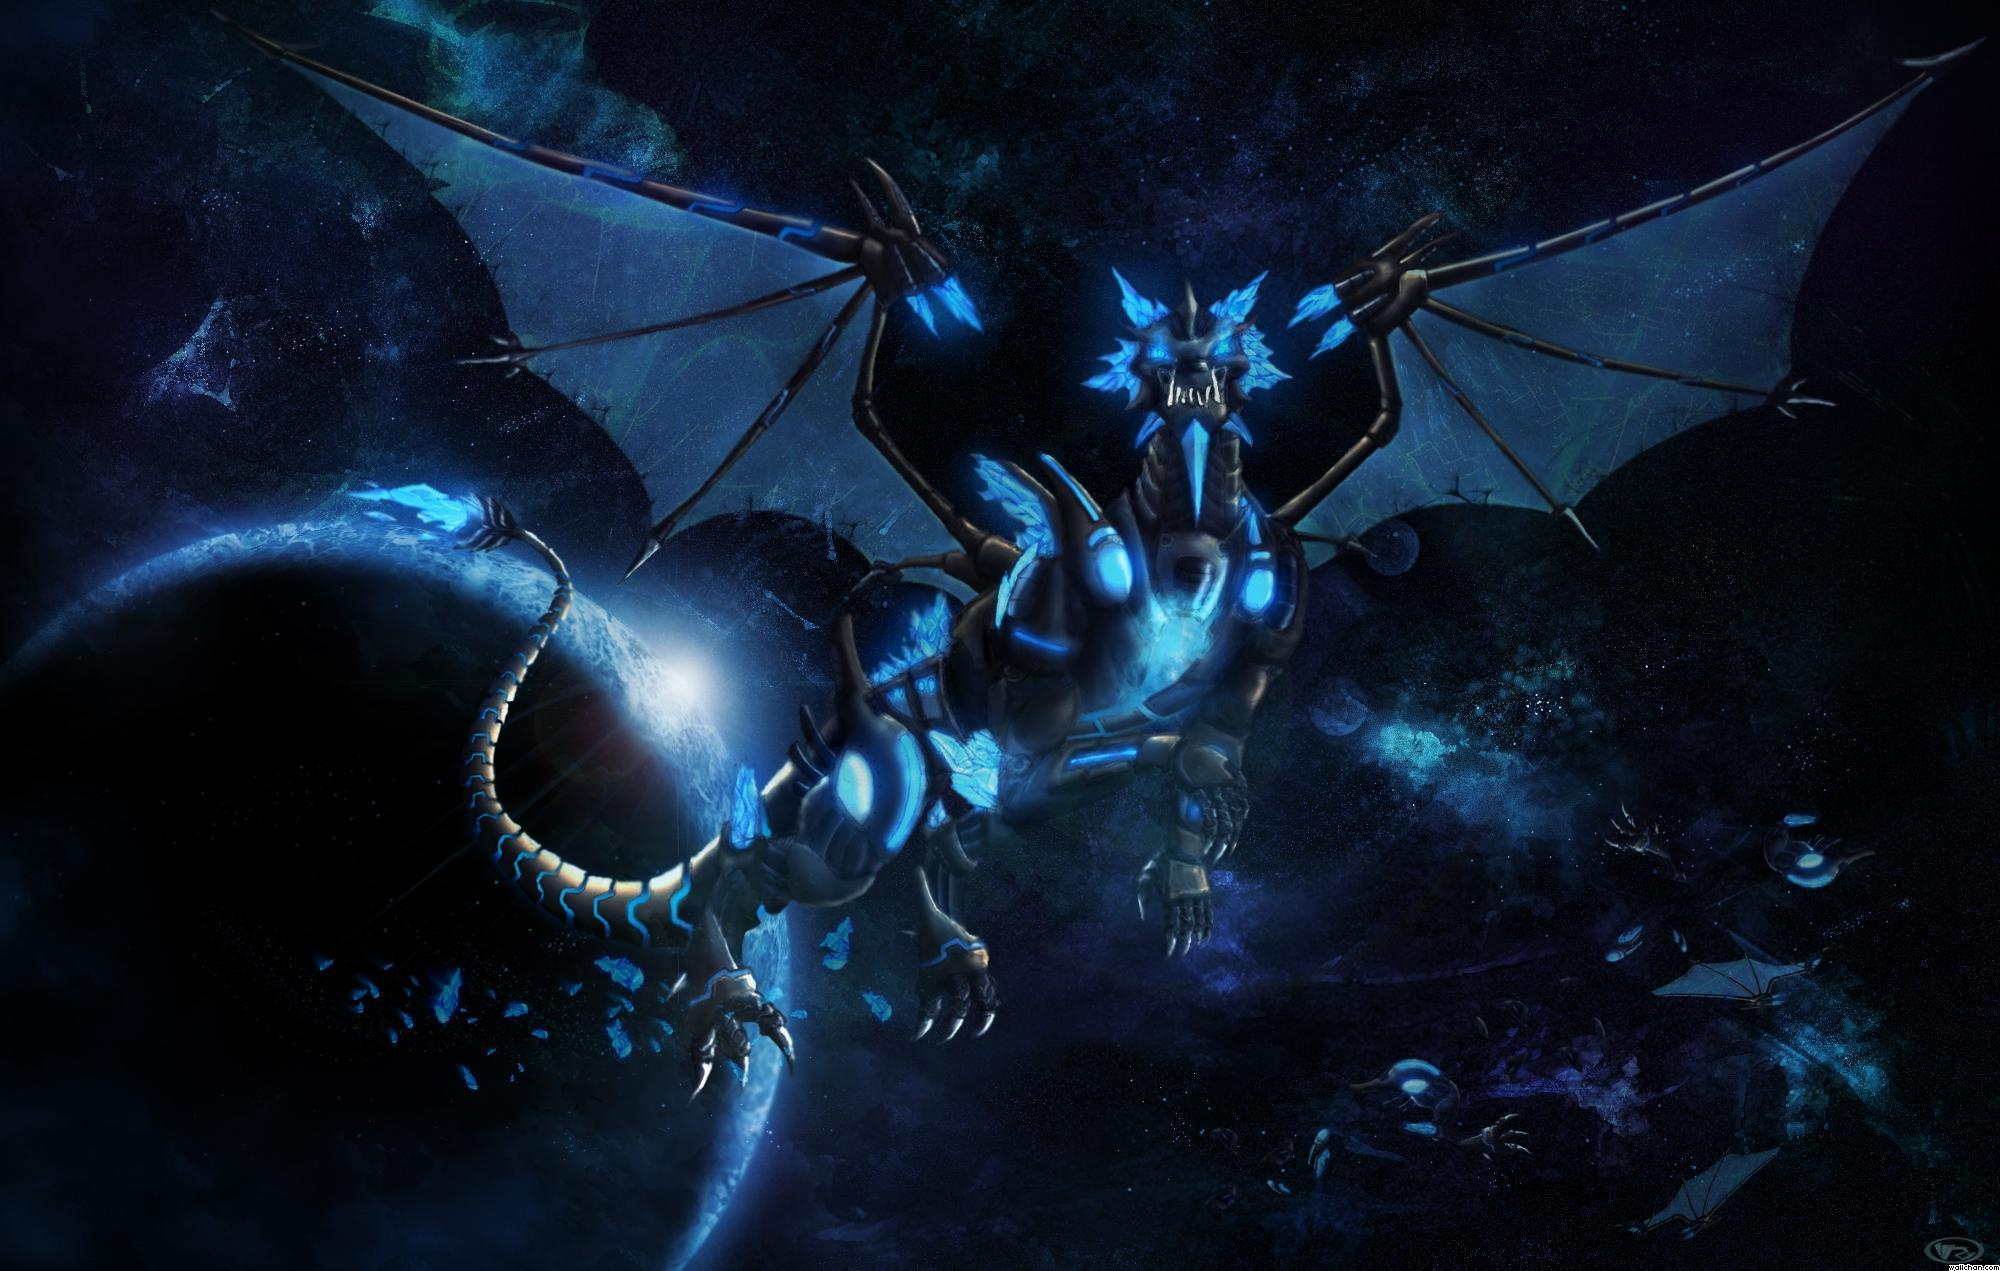 dragon wallpaper widescreen high resolution - photo #24